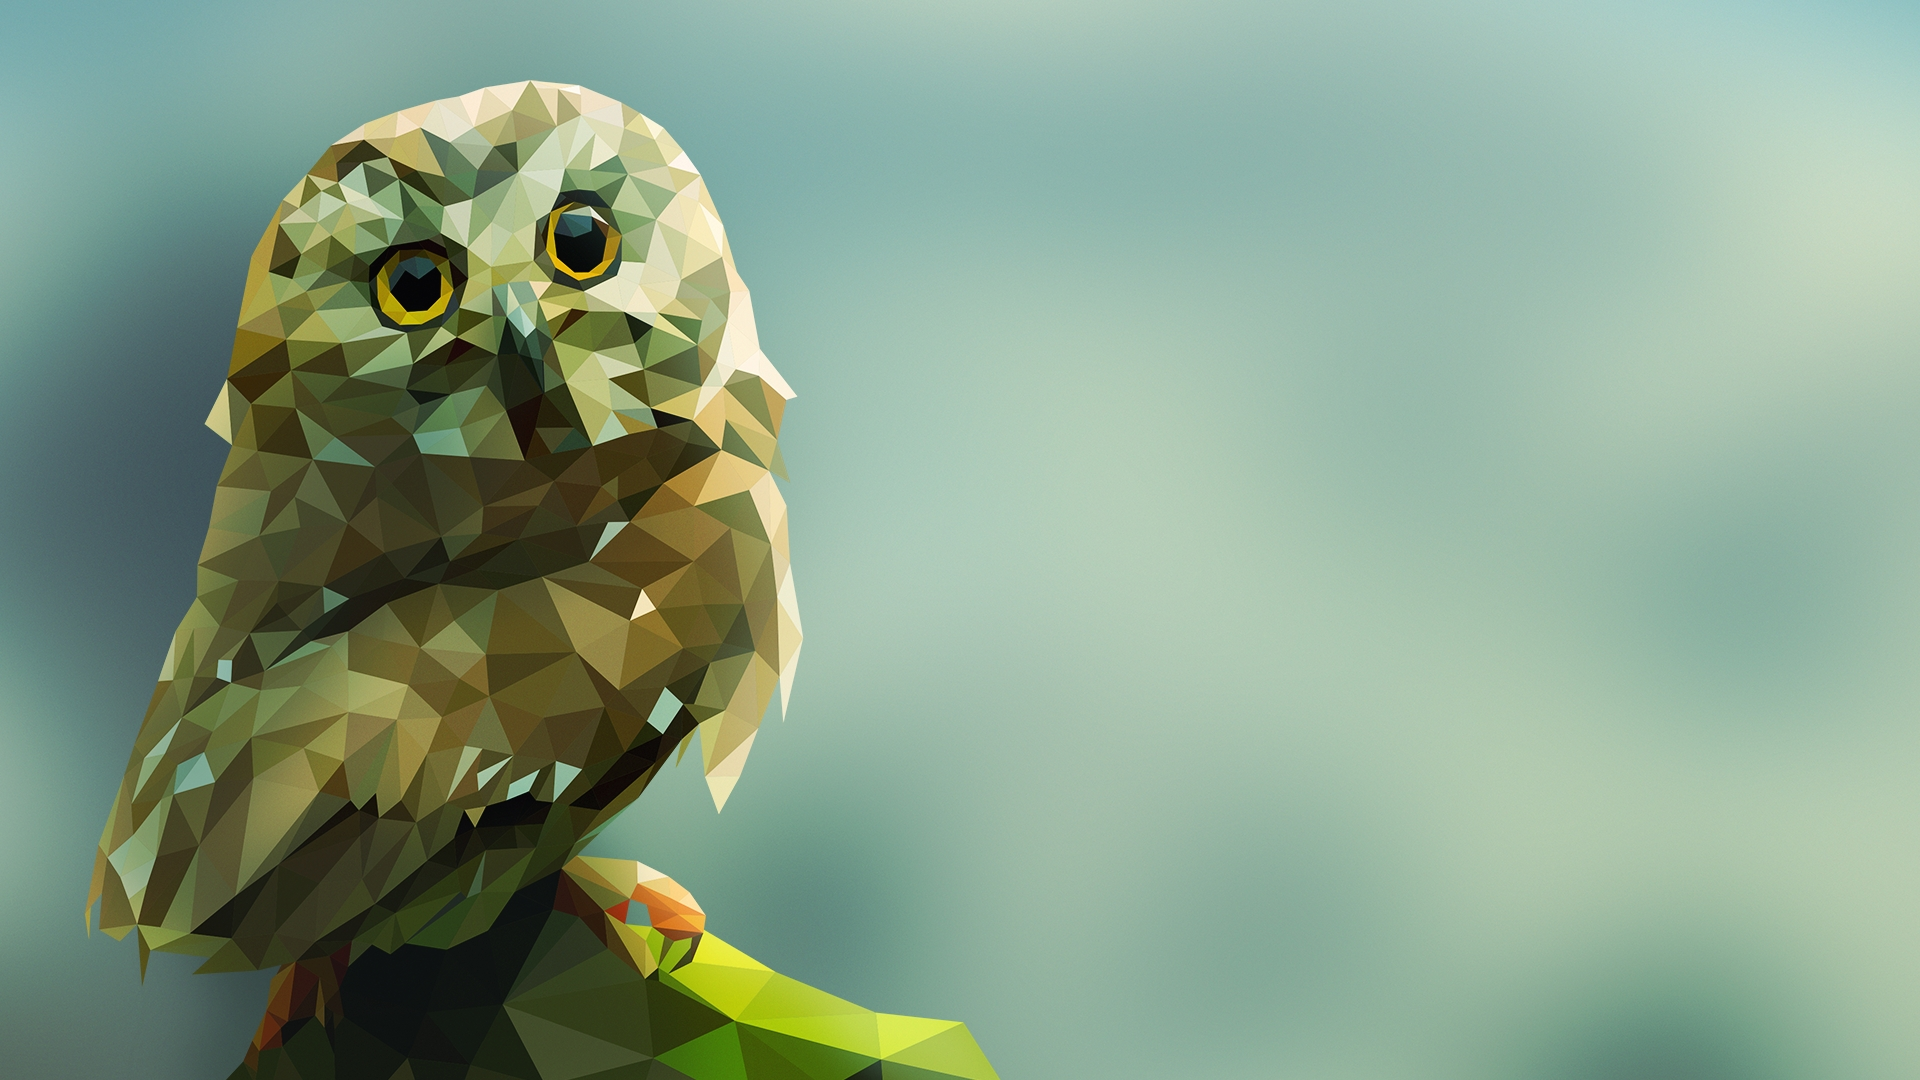 owl art wallpaper 21130 - baltana